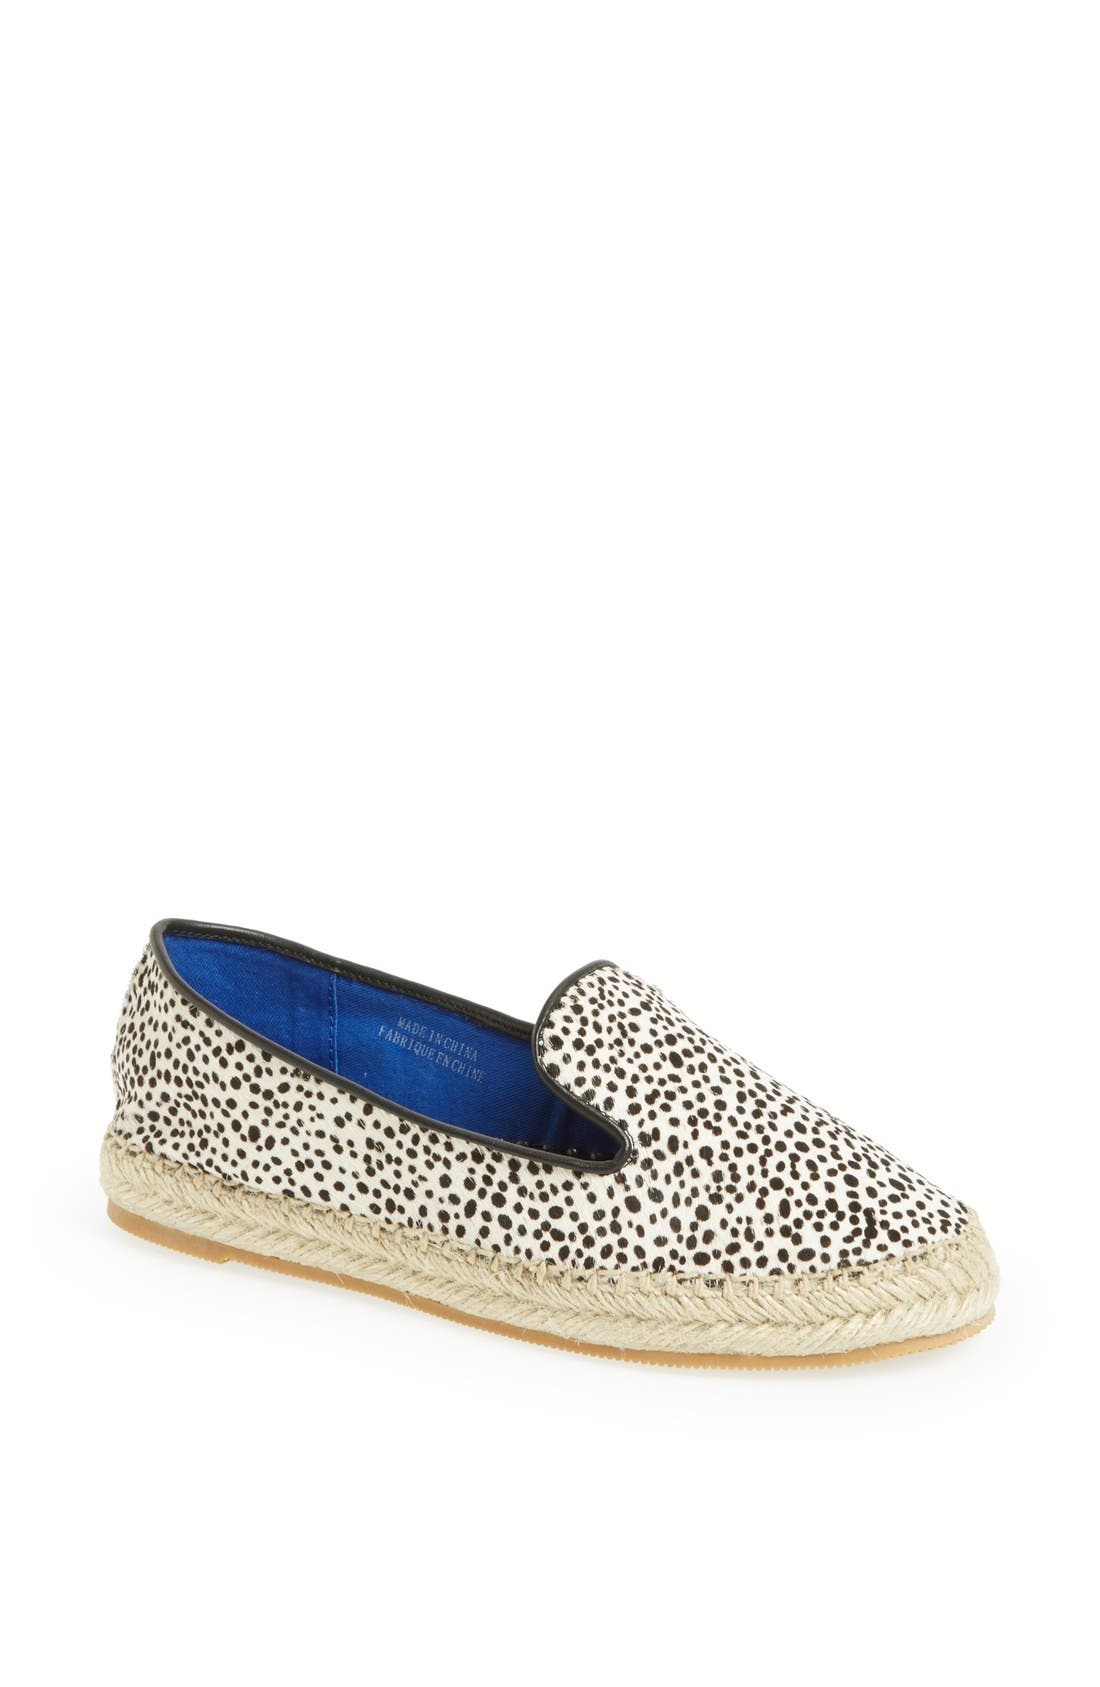 'Abides' Printed Calf Hair Espadrille Flat,                         Main,                         color, White Black Jaguar